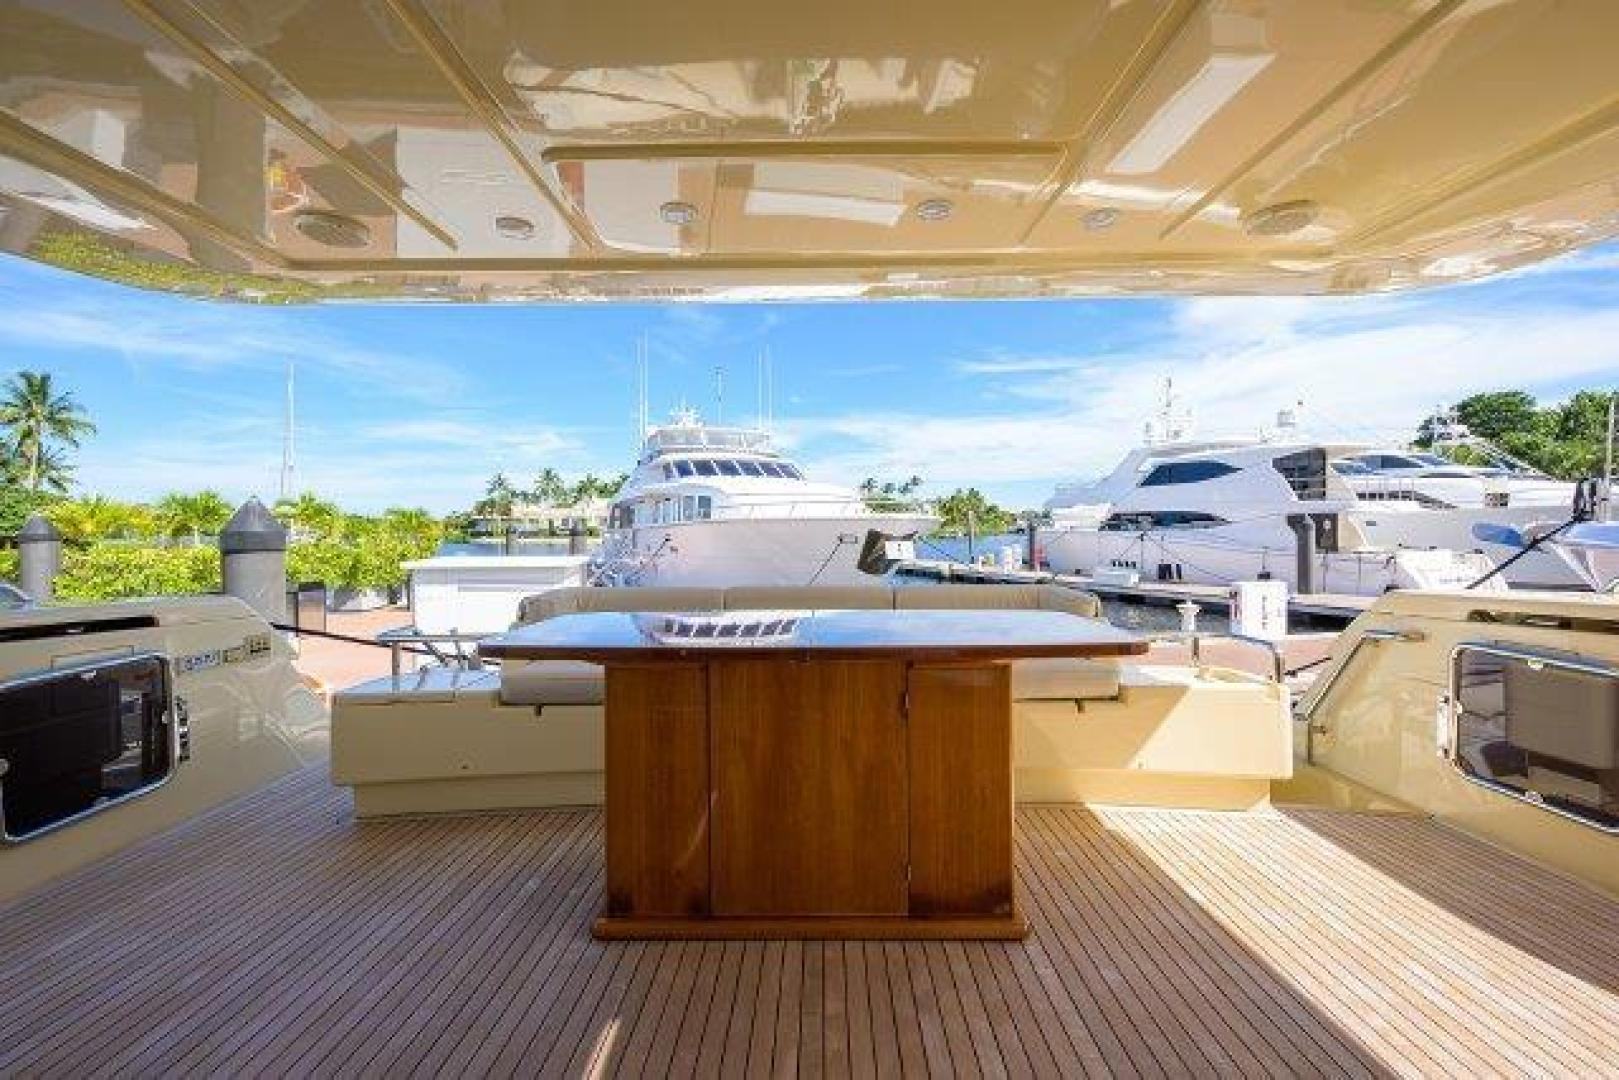 Ferretti Yachts-Altura 840 2010-MISS ALLIED Jupiter-Florida-United States-Aft Deck-1518357 | Thumbnail